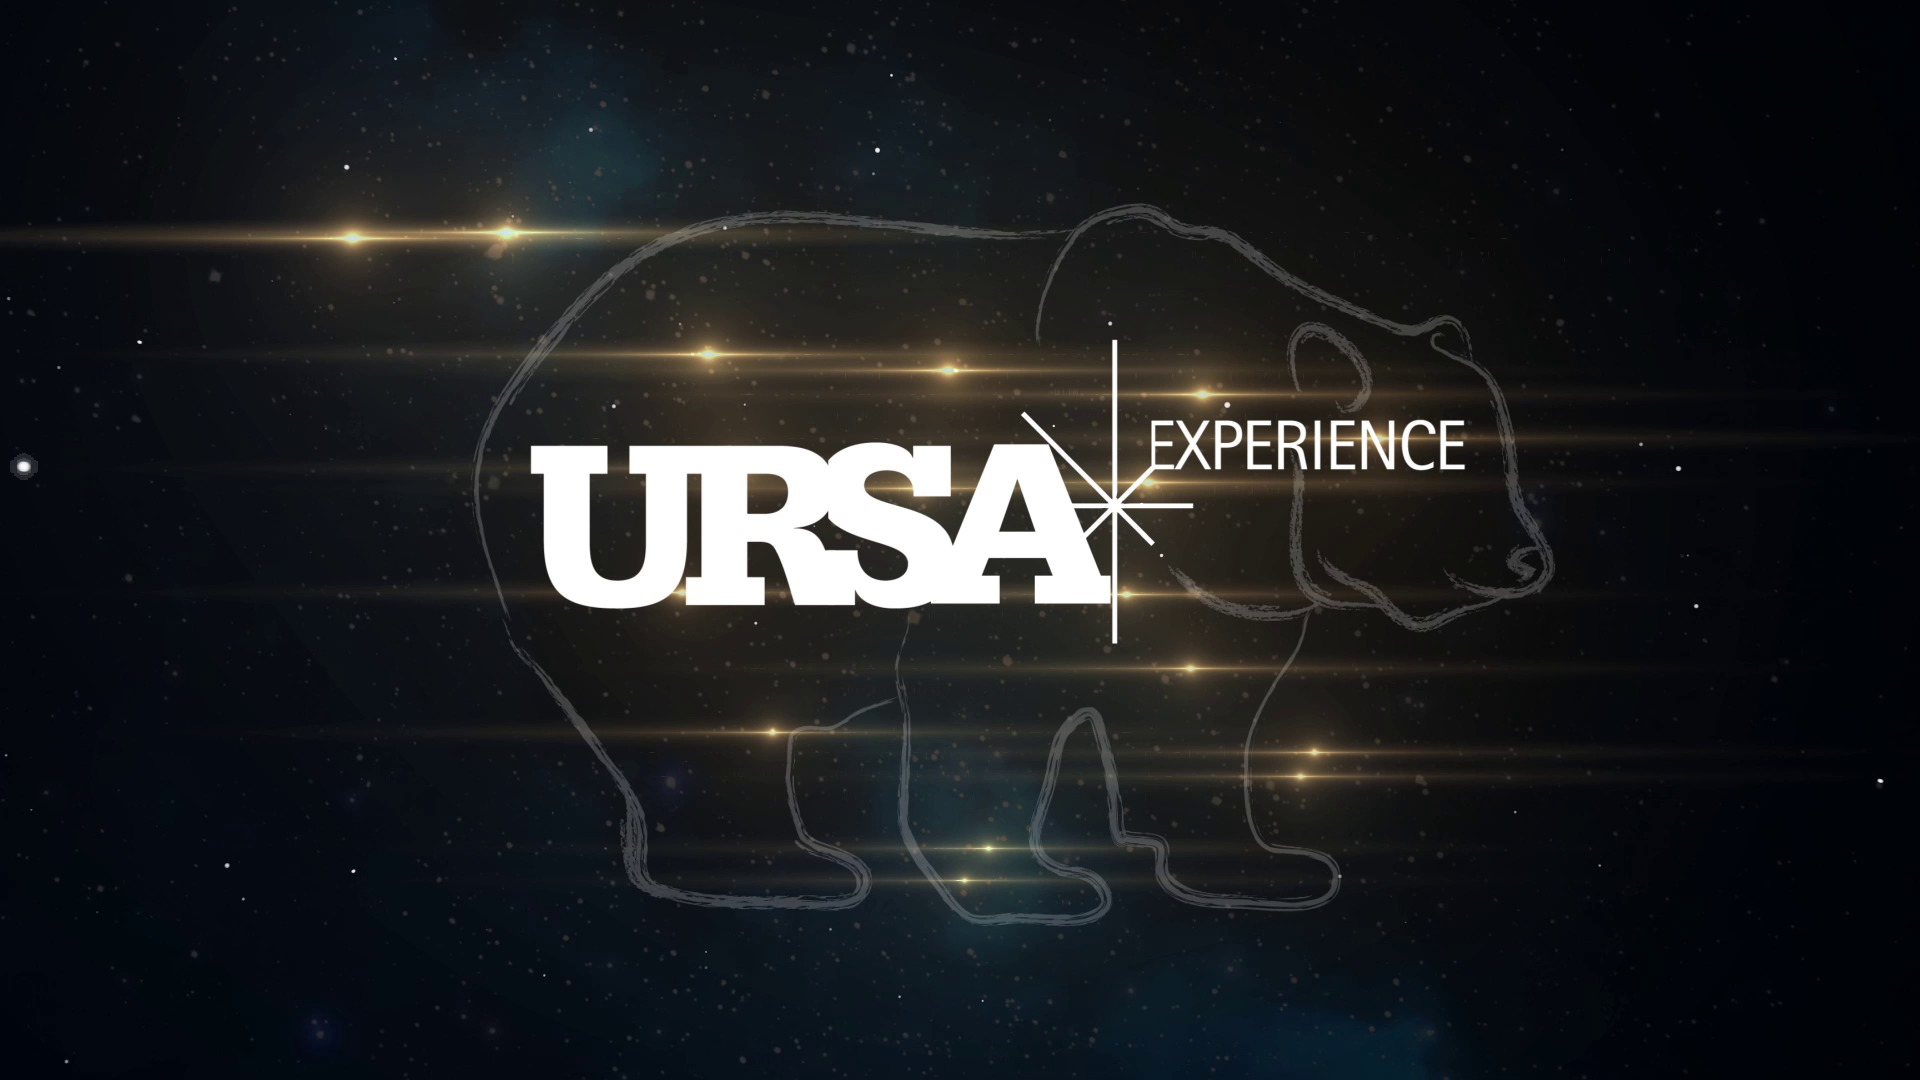 A thumbnail for the URSA Experience Promo Animation